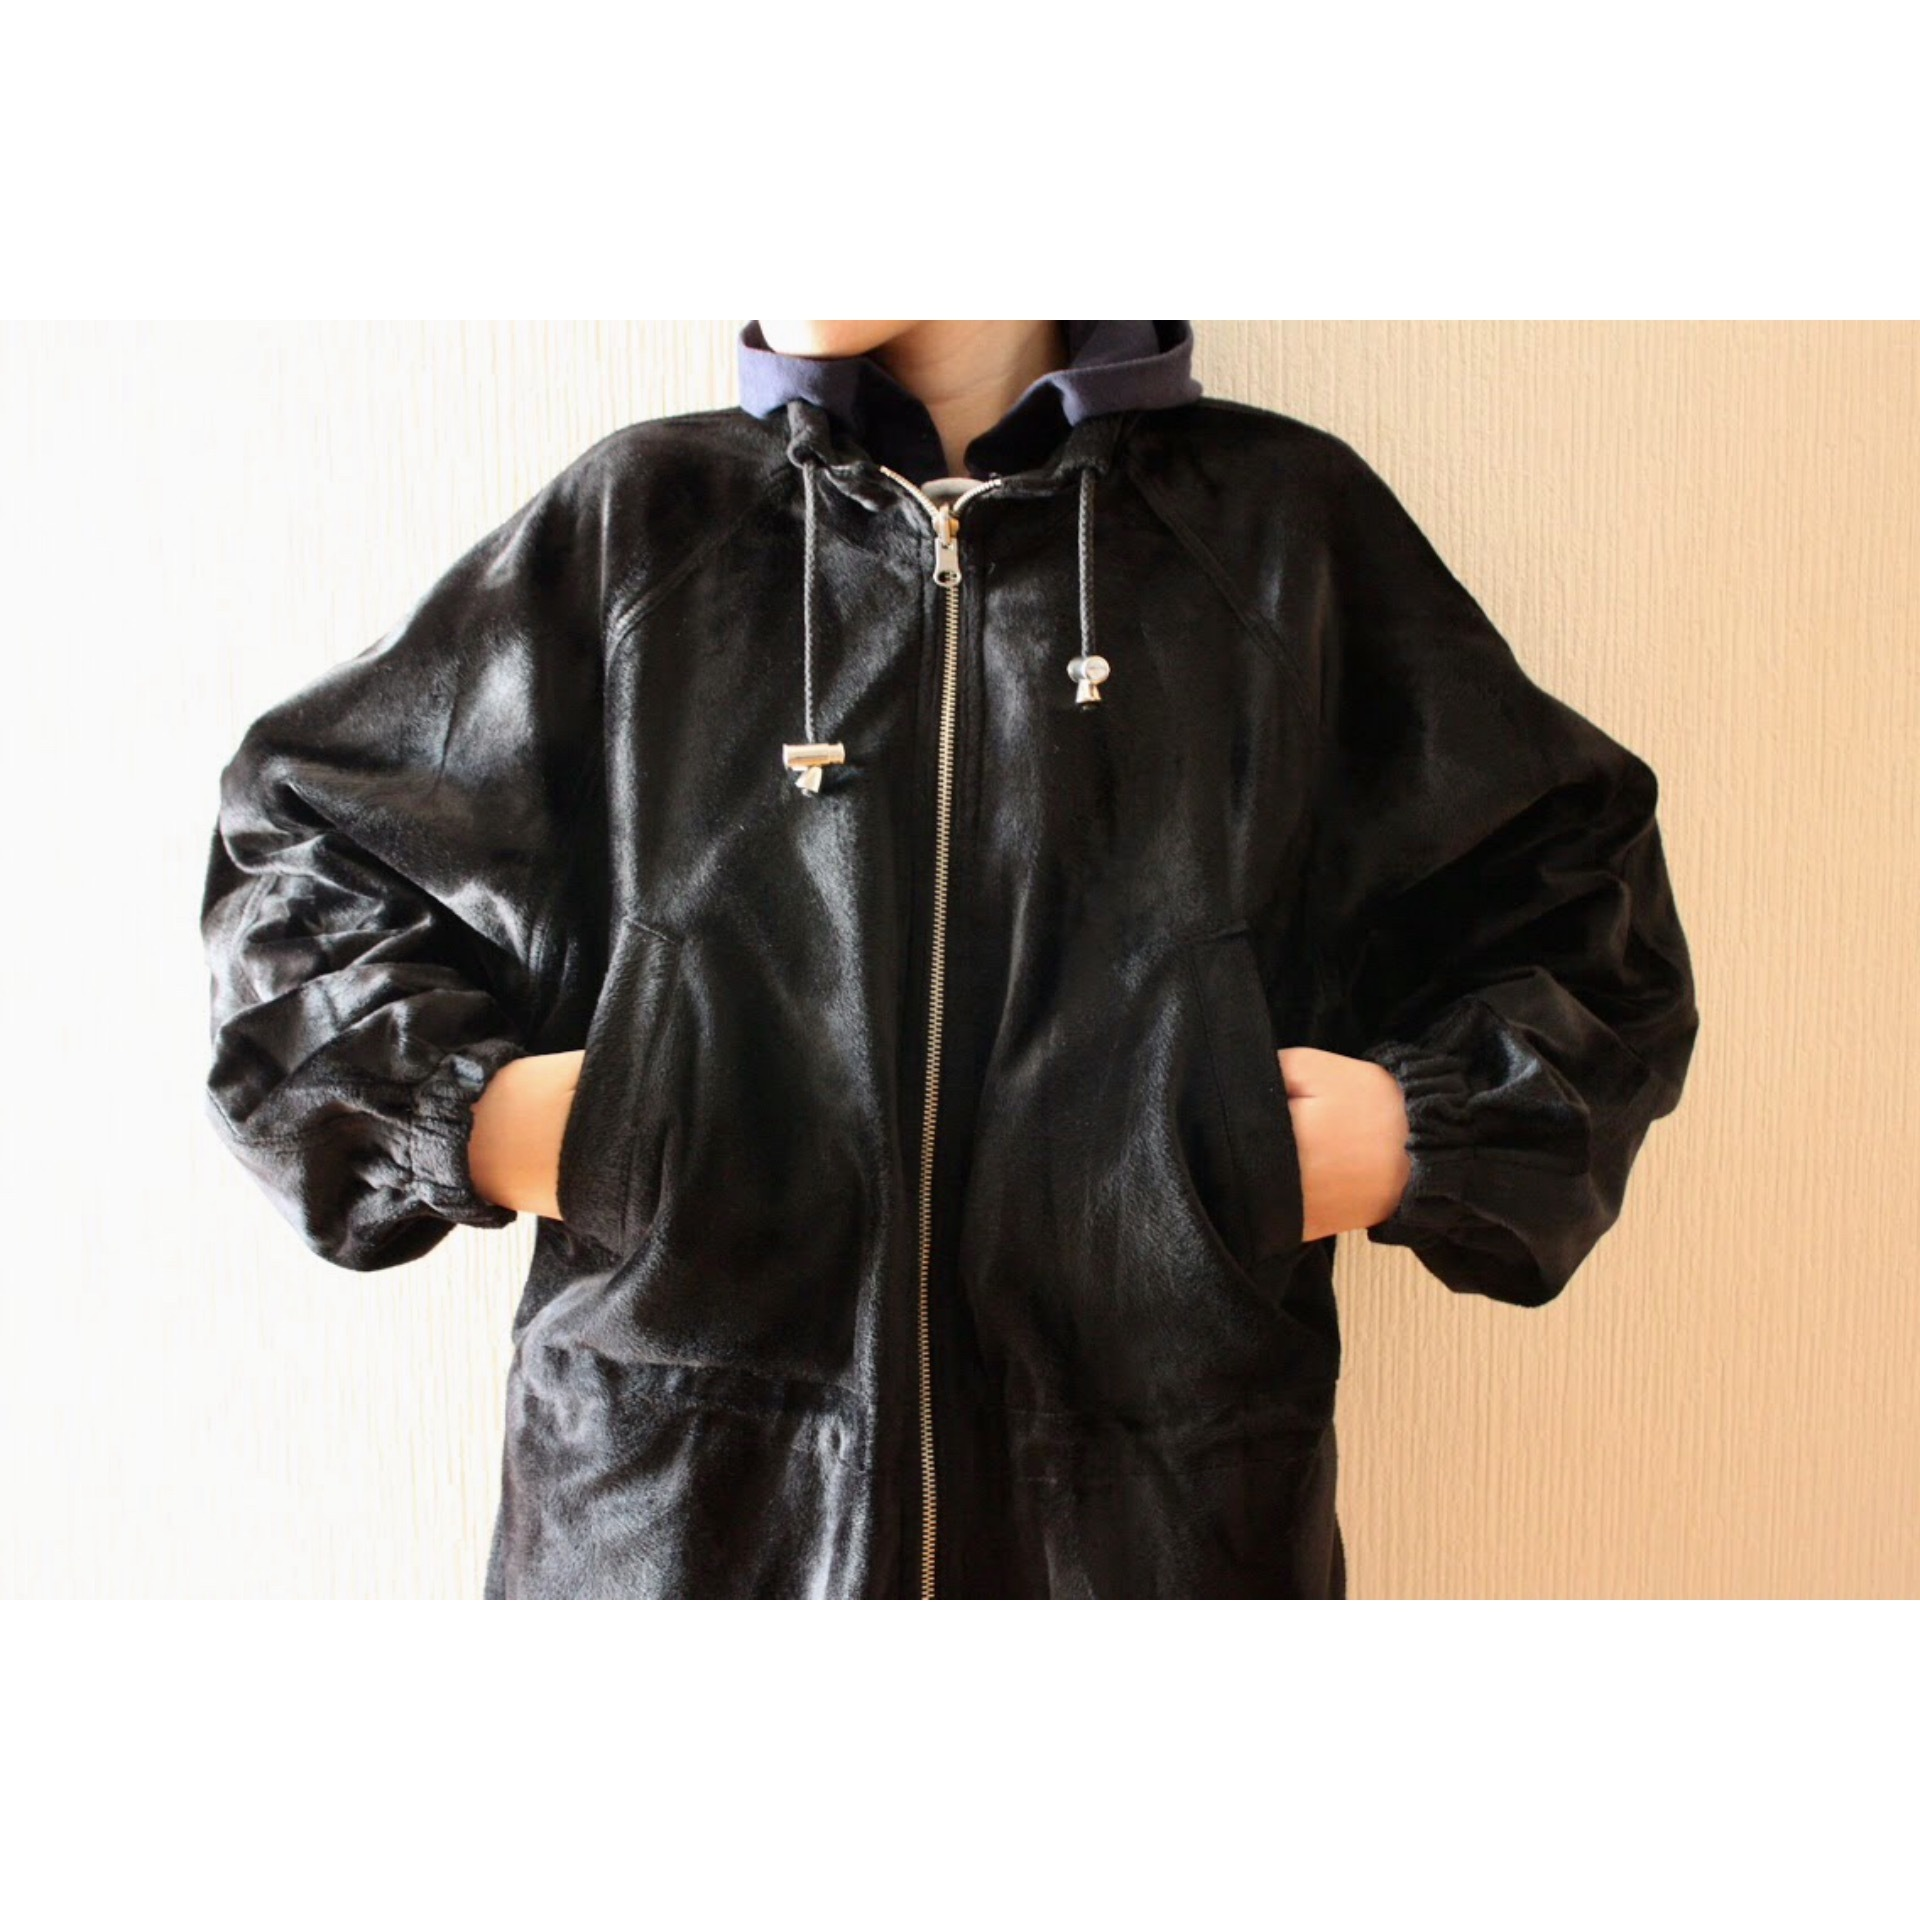 Vintage shiny fabric reversible jacket